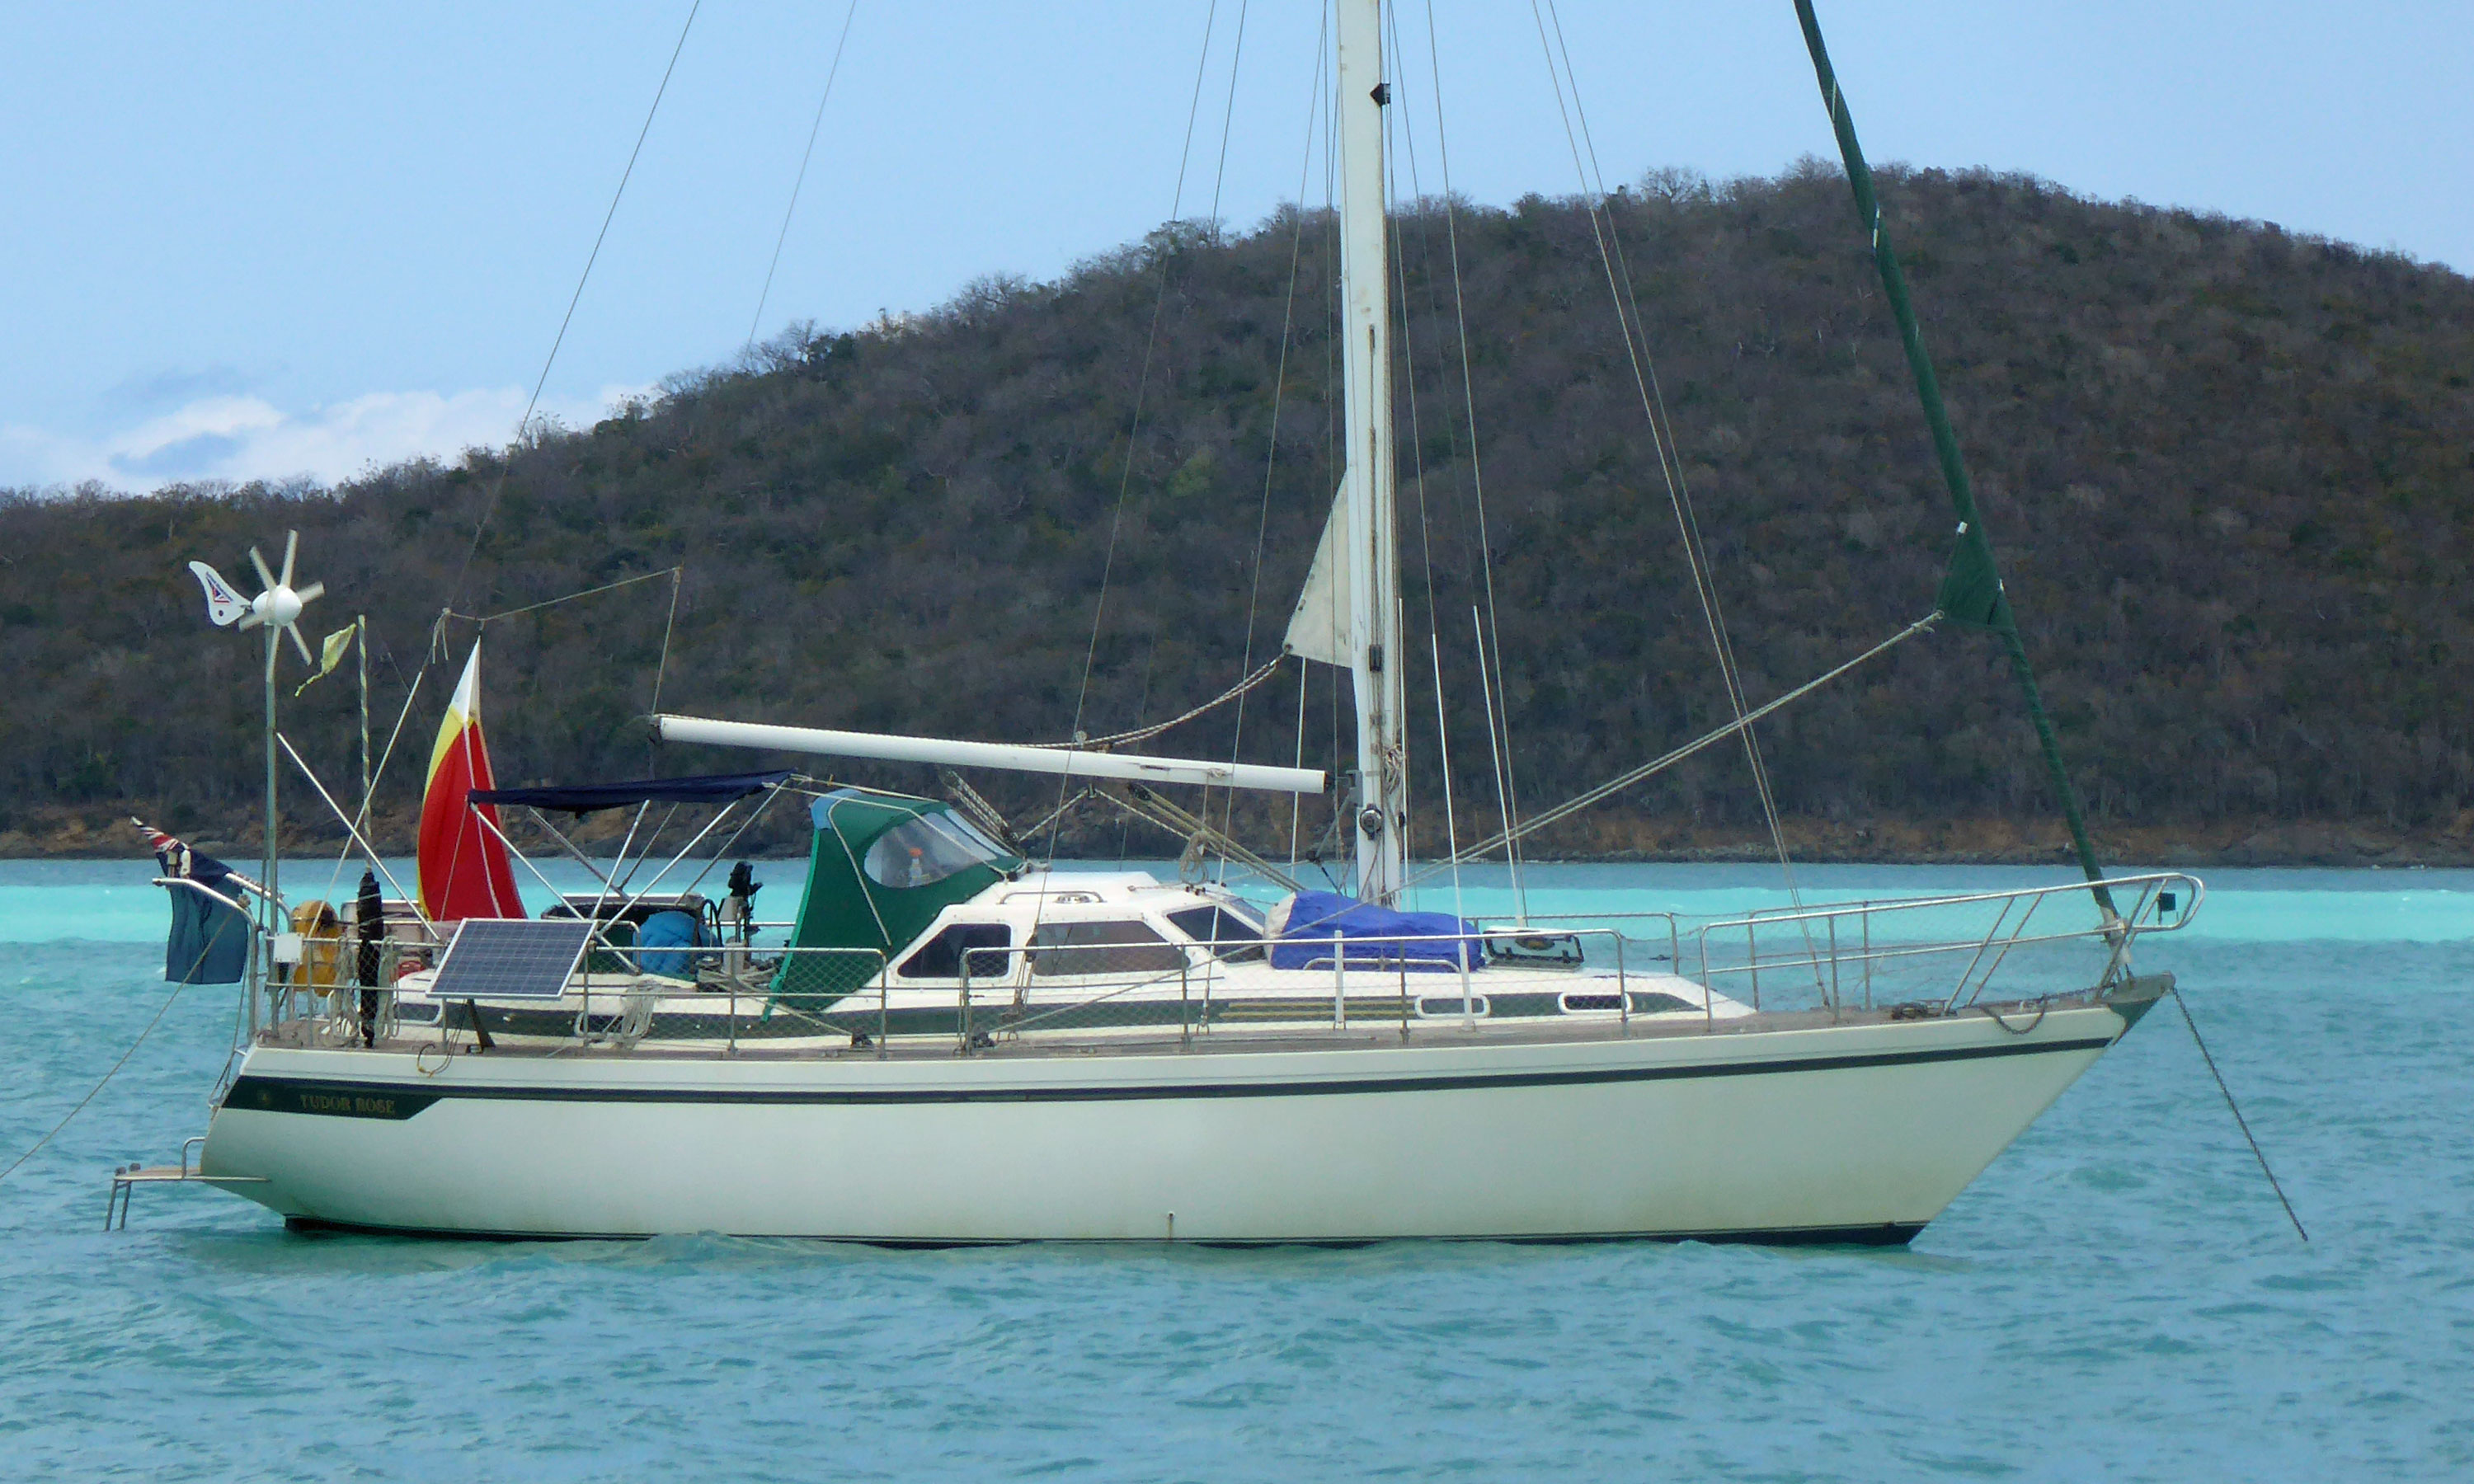 A Colvic Countess 37 Sailboat